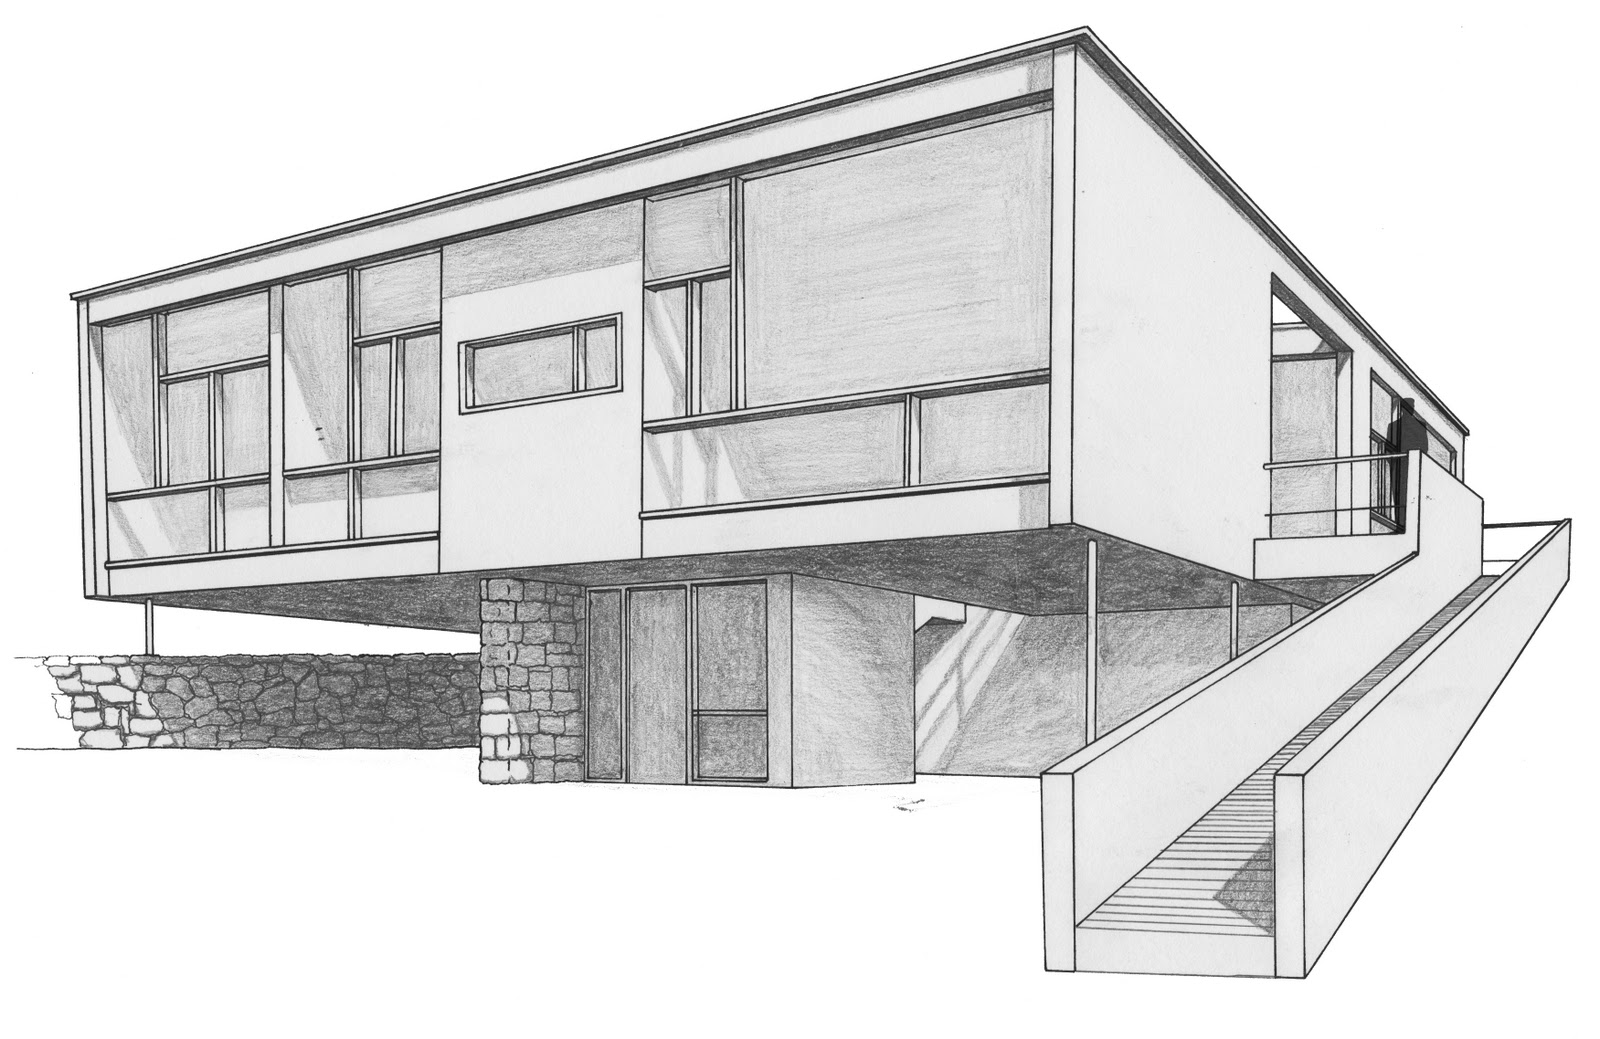 2 Point Perspective Drawing  House http://toddnorcott.blogspot.com/p/draw-it.html